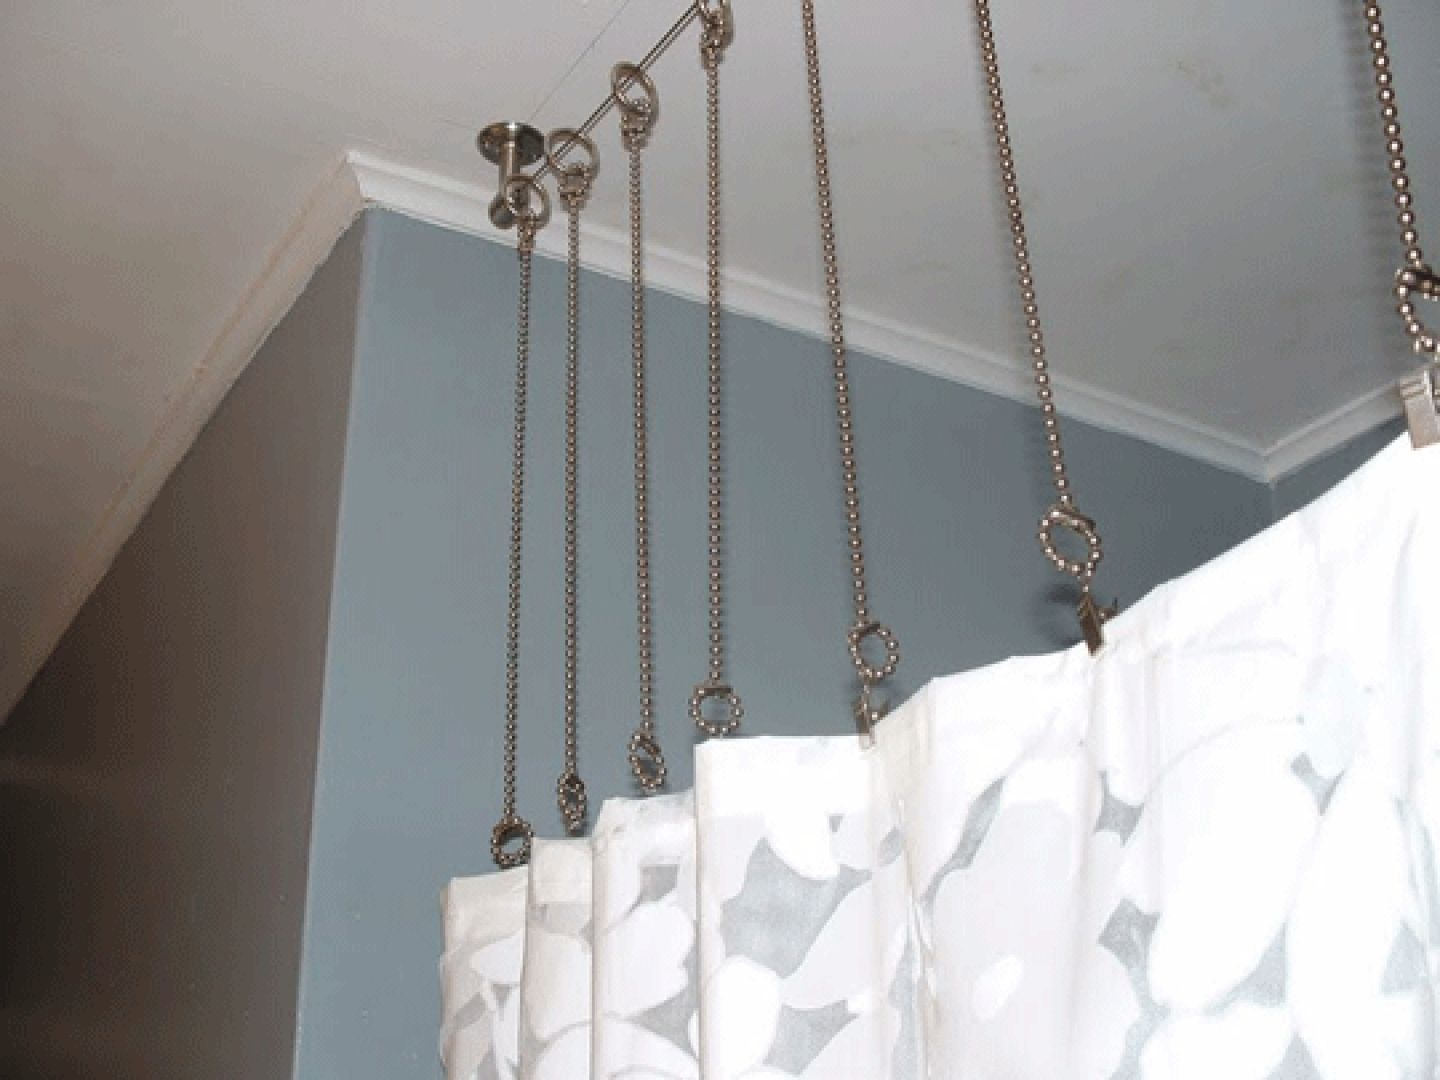 Shower Curtain Hanging Chains Clawfoot Tub Shower Curtain Diy